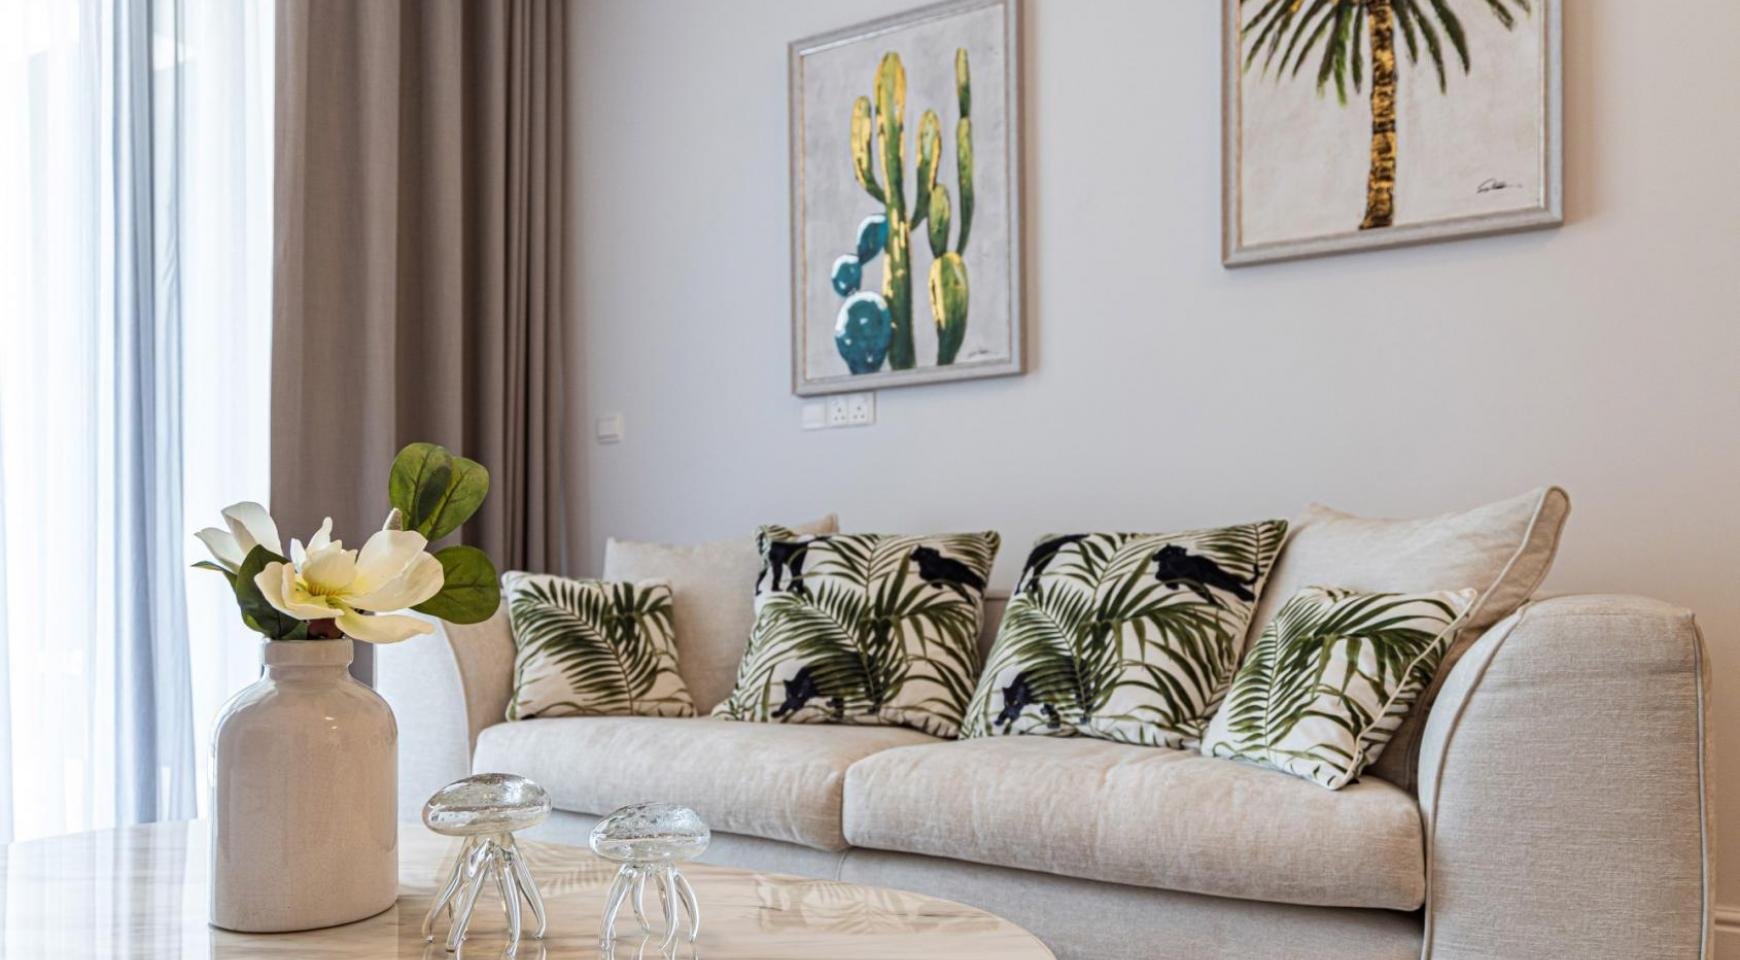 Hortensia Residence, Apt. 202. 2 Bedroom Apartment within a New Complex near the Sea  - 53